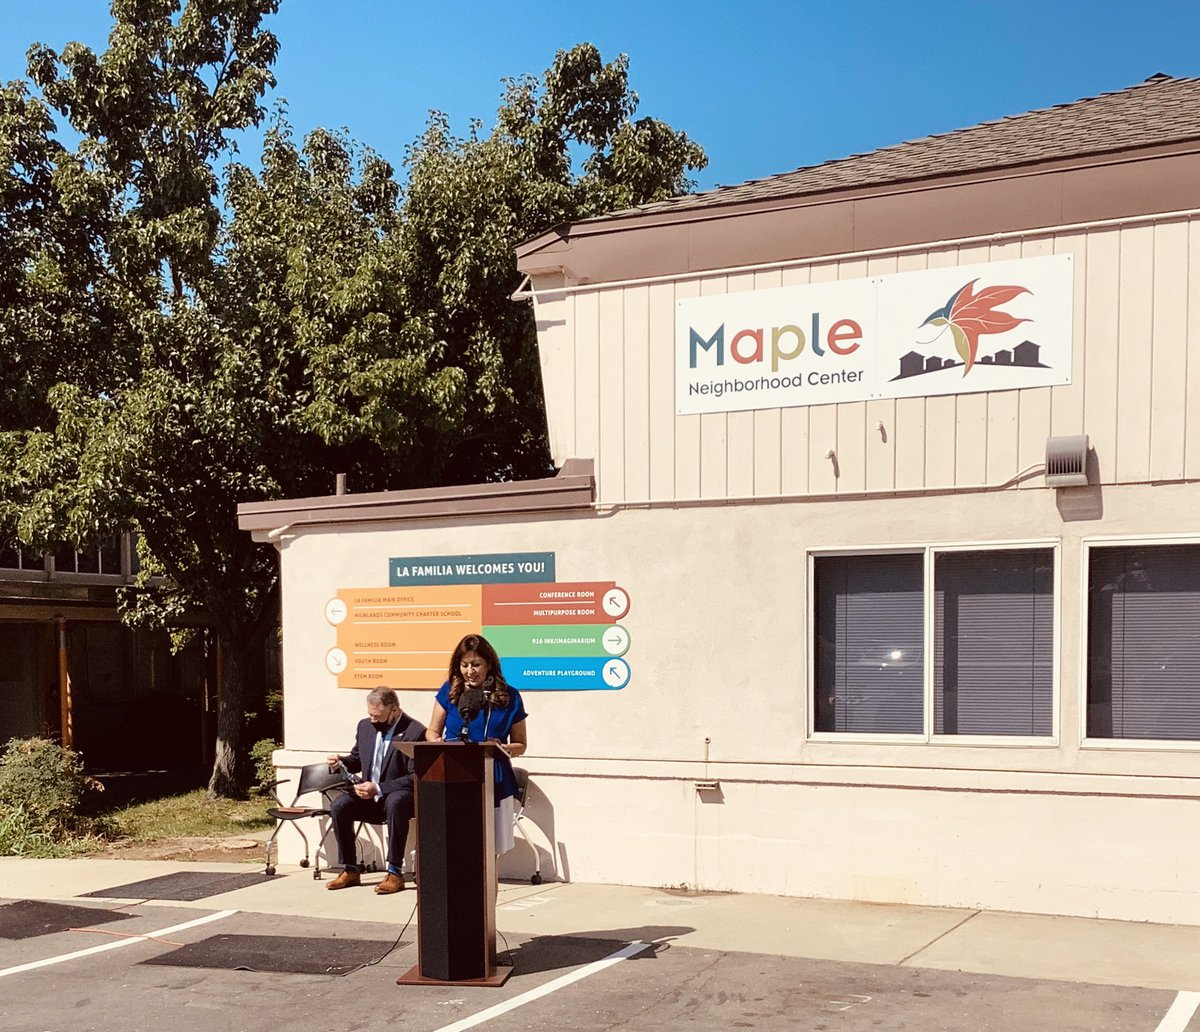 Regional Administrator Christopher Patterson announced the designation of La Familia Counseling Centers Maple Neighborhood Center as a HUD-approved EnVision Center today! Thank You @HUDgov for this designation! https://t.co/WYoFm5wccE